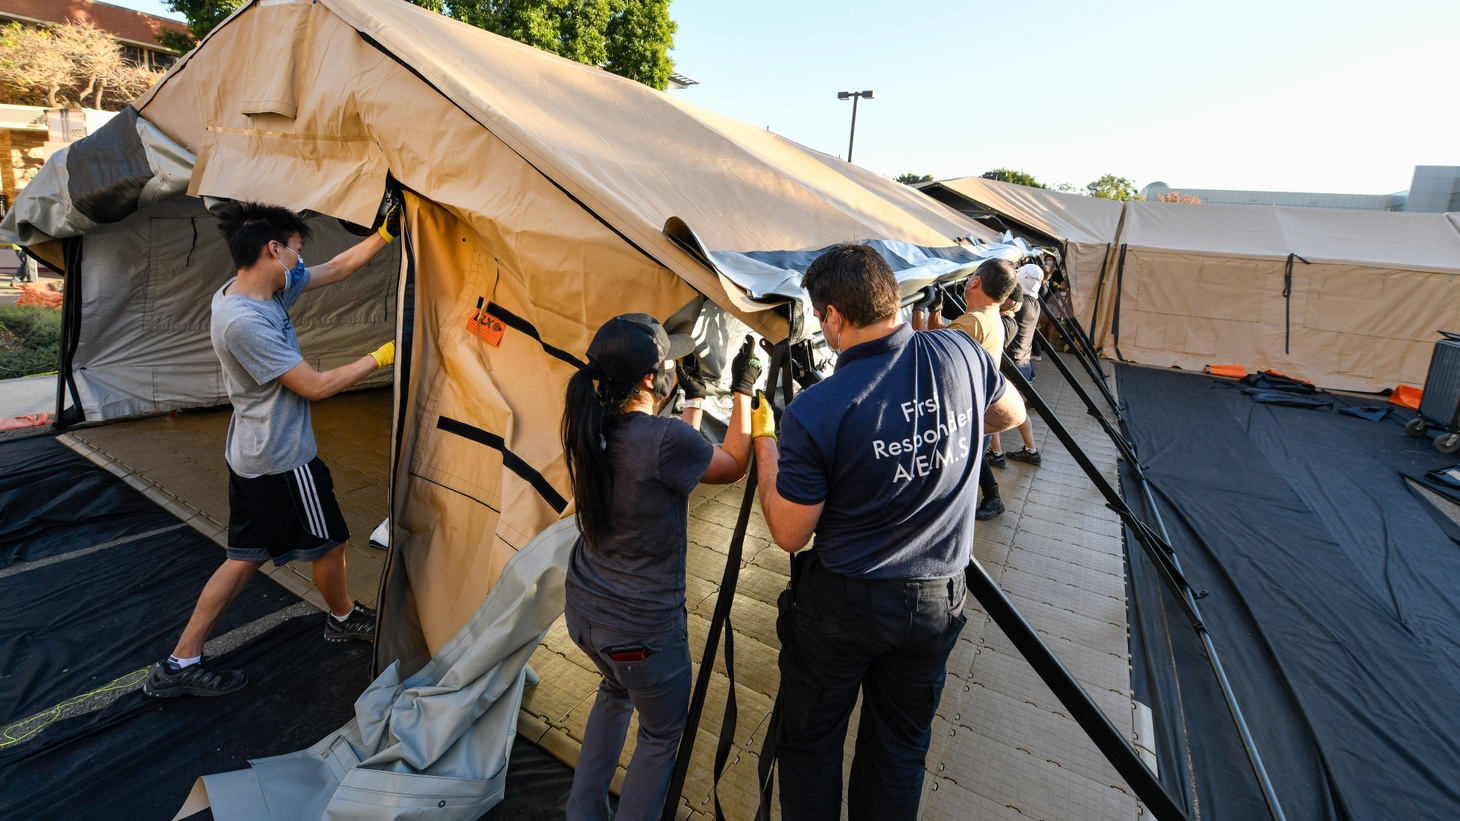 Volunteers work on assembling temporary buildings next to the emergency room entrance at University of California, Irvine Medical Center. Hospital officials say the buildings will be used to help ease the strain on their emergency room during the coronavirus pandemic. December 21, 2020.